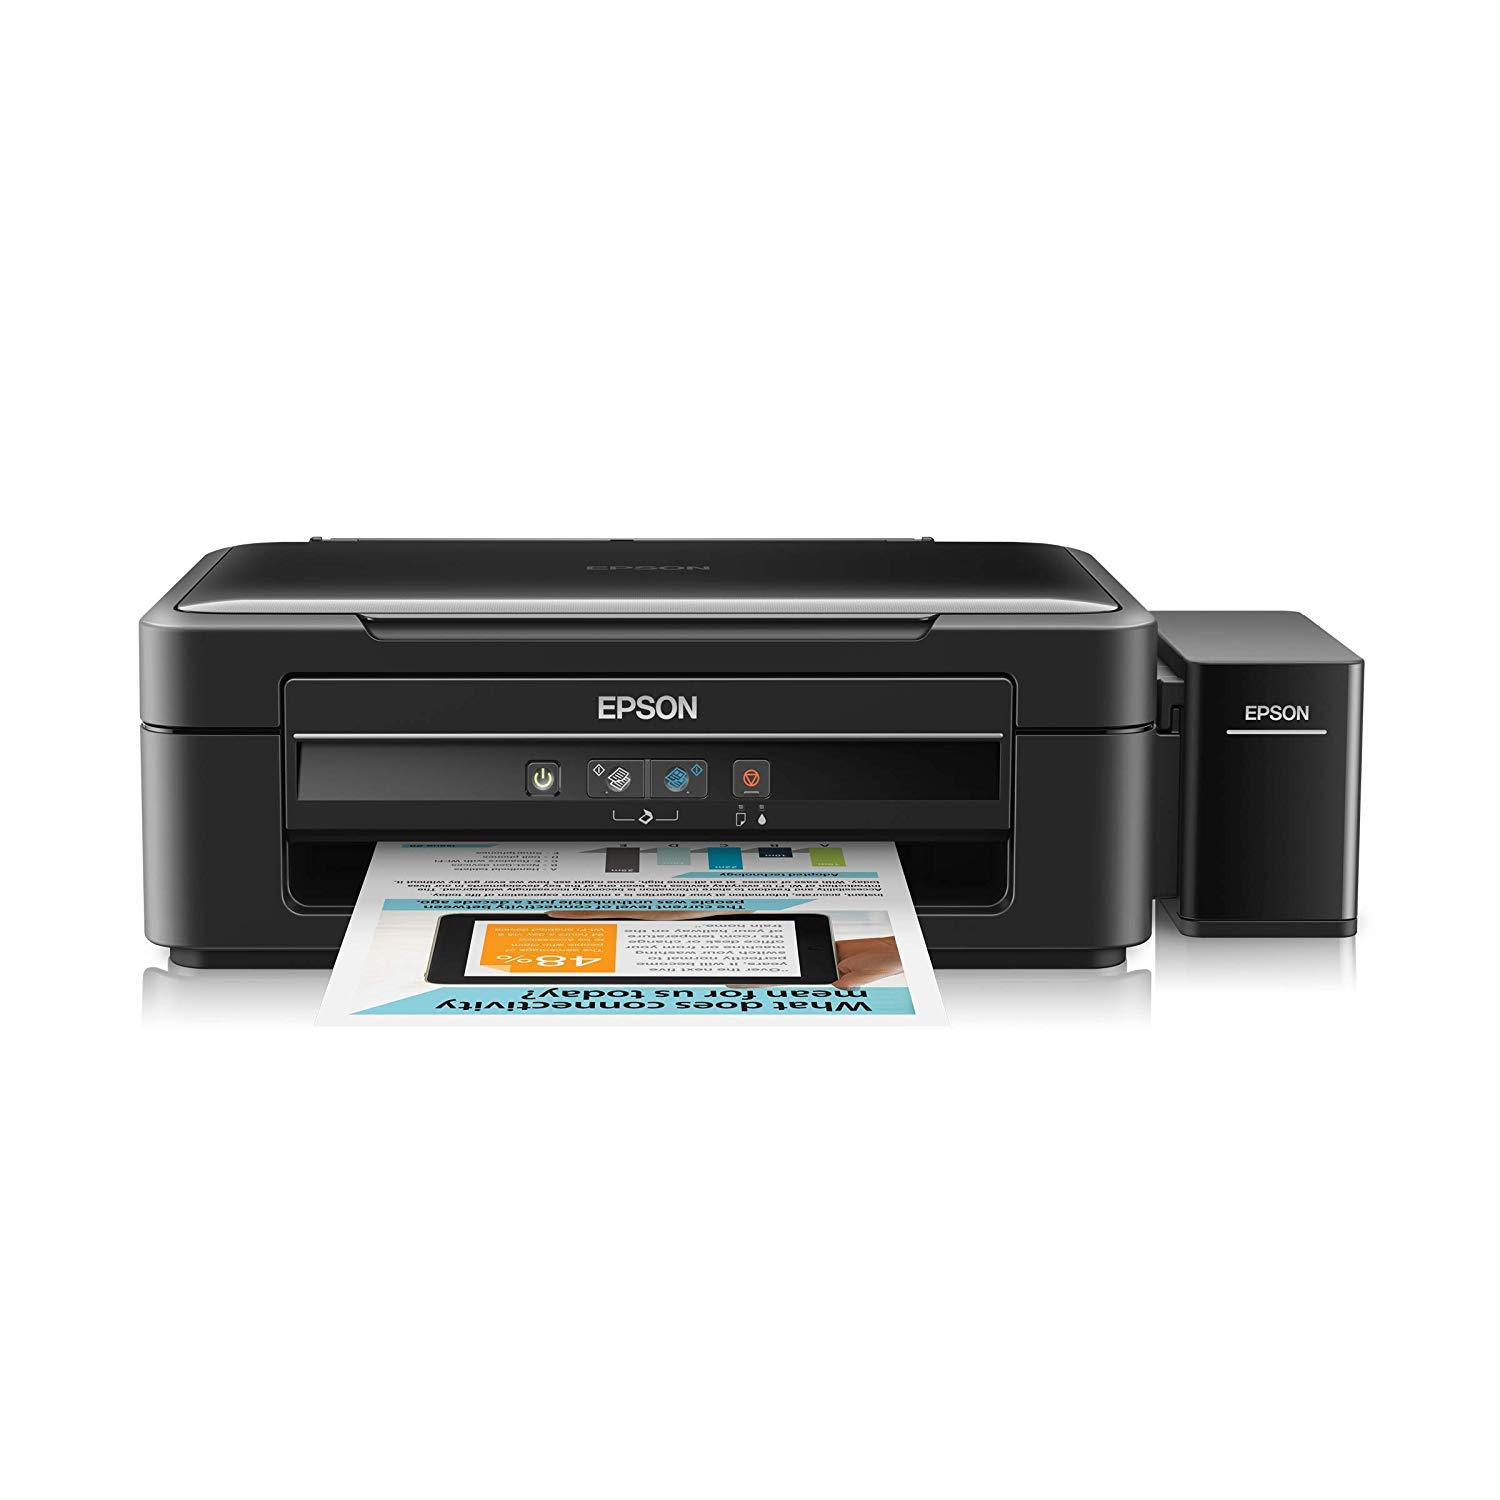 Epson L360 Multi-Function Ink Tank Colour Printer (Black)